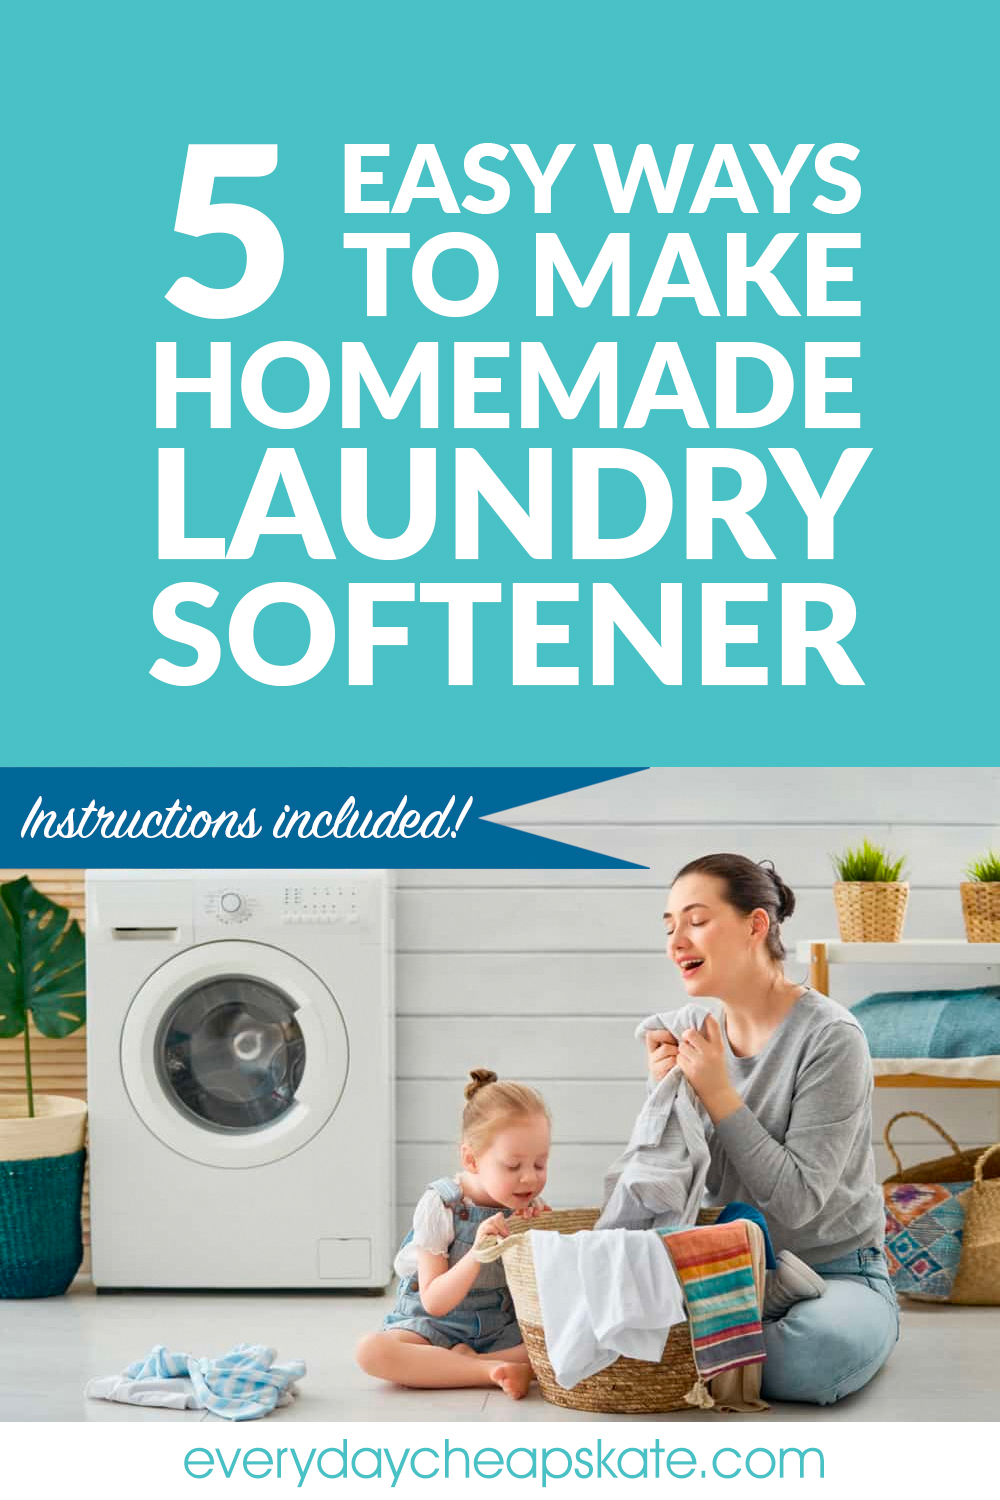 29ae527bda979962e1cf4030b55d28b8 - How To Get Fabric Softener Residue Out Of Clothes